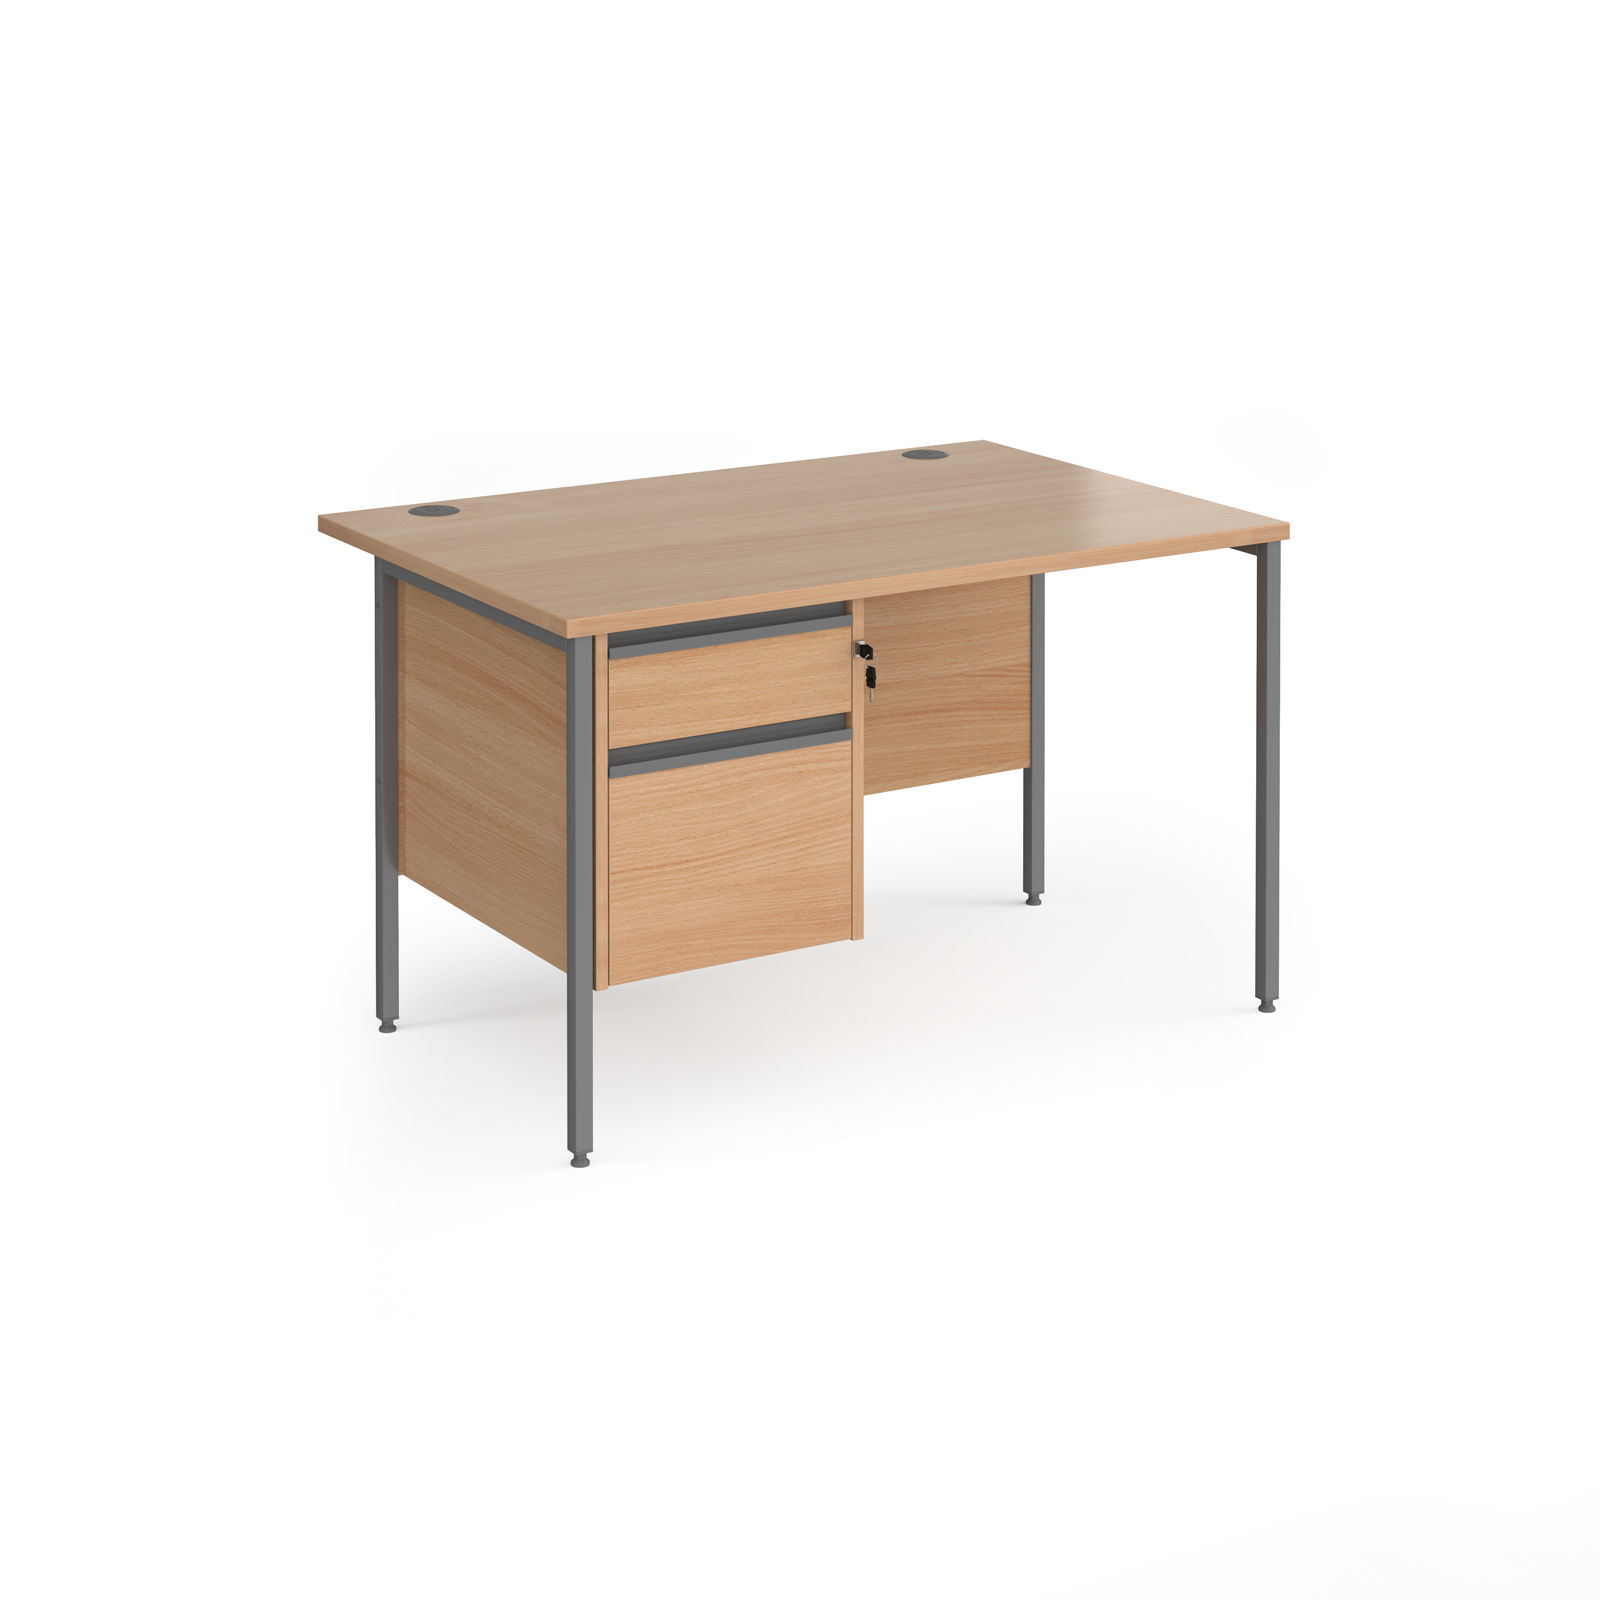 Contract 25 straight desk with 2 drawer pedestal and graphite H-Frame leg 1200mm x 800mm - beech top